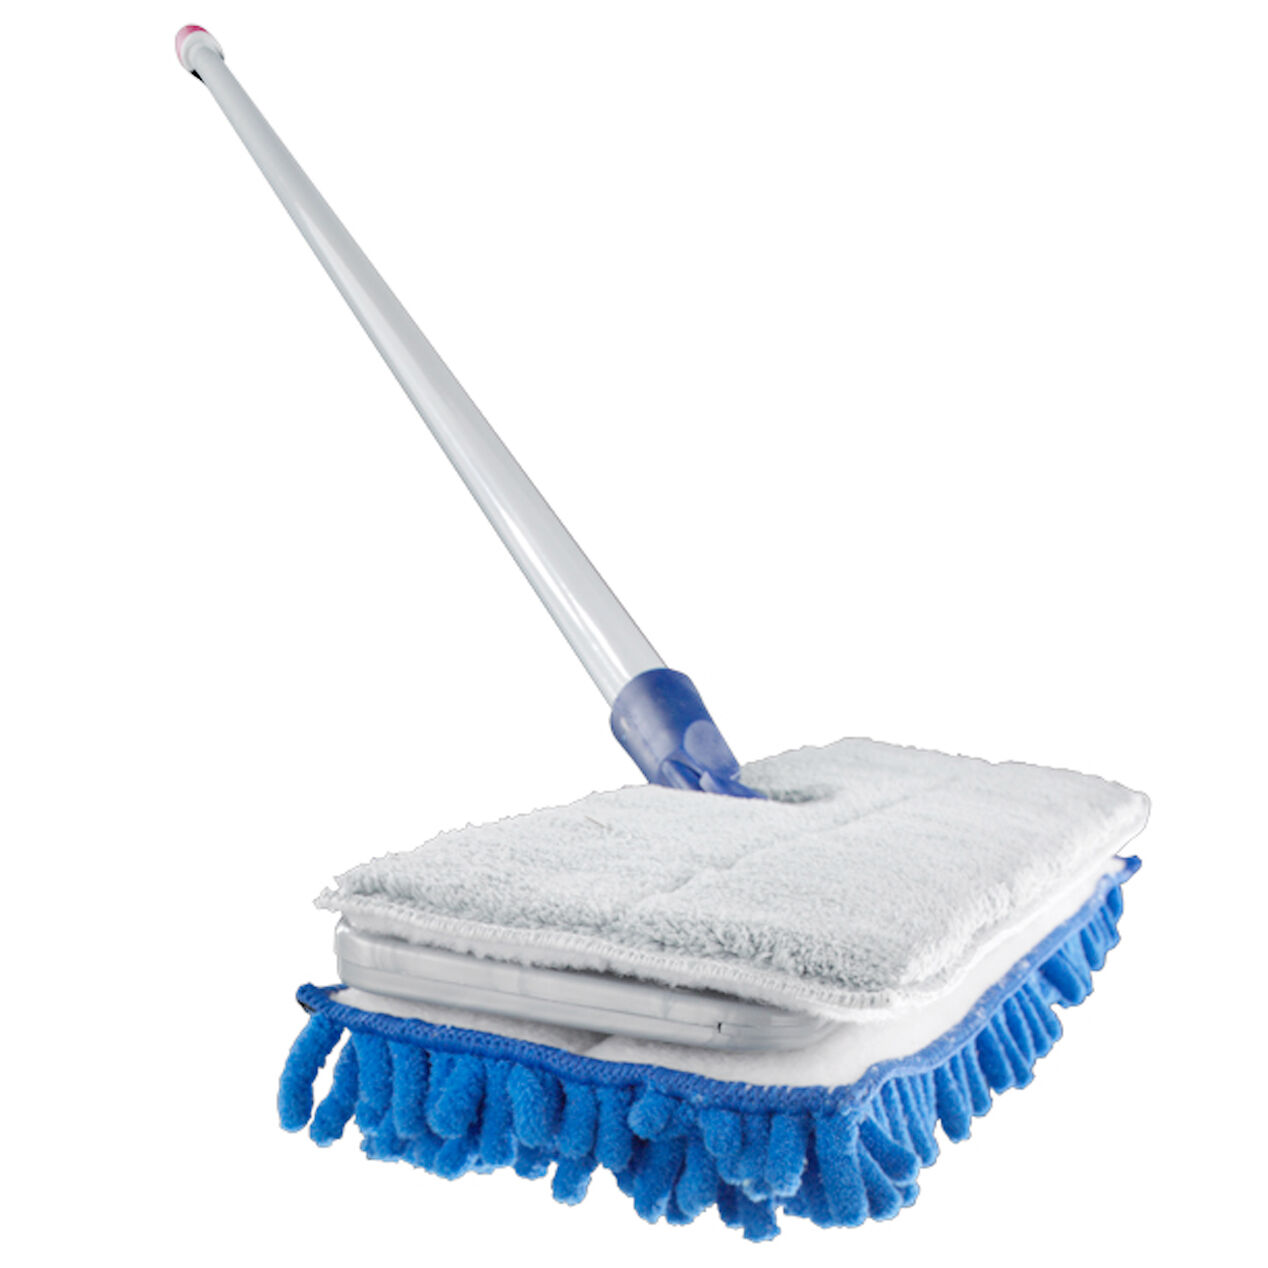 Mr Clean Dust Mop At Home